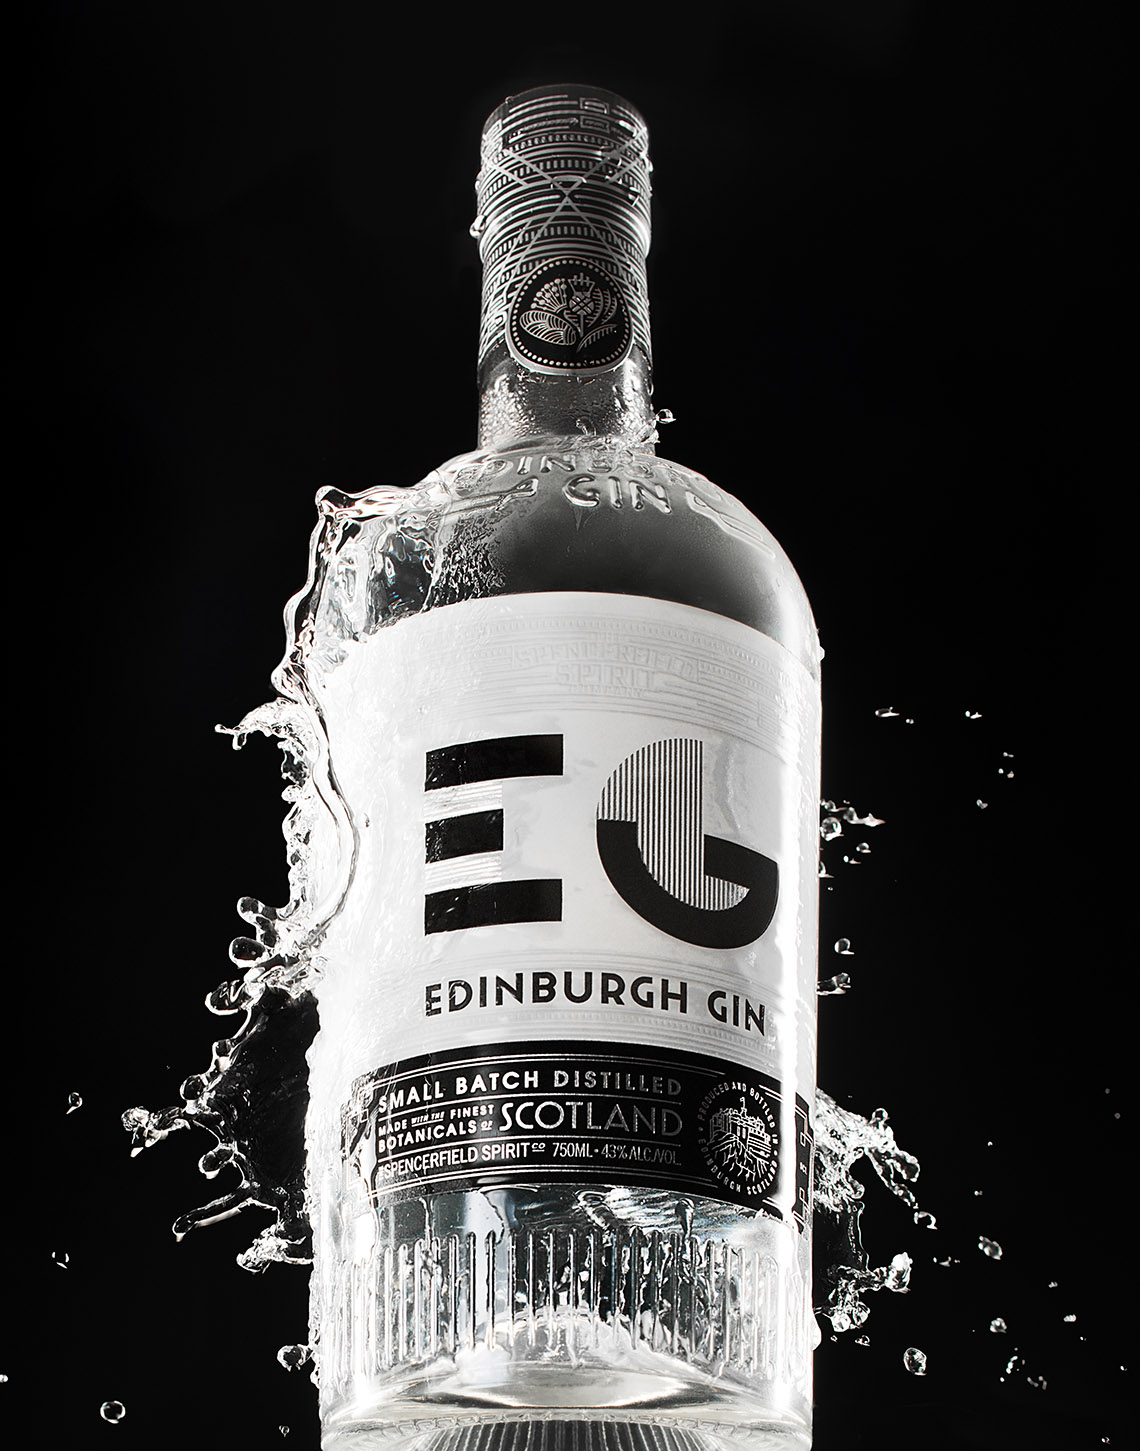 New-york-liquid-photography-new-york-Beverage-photography-Edinburgh-gin